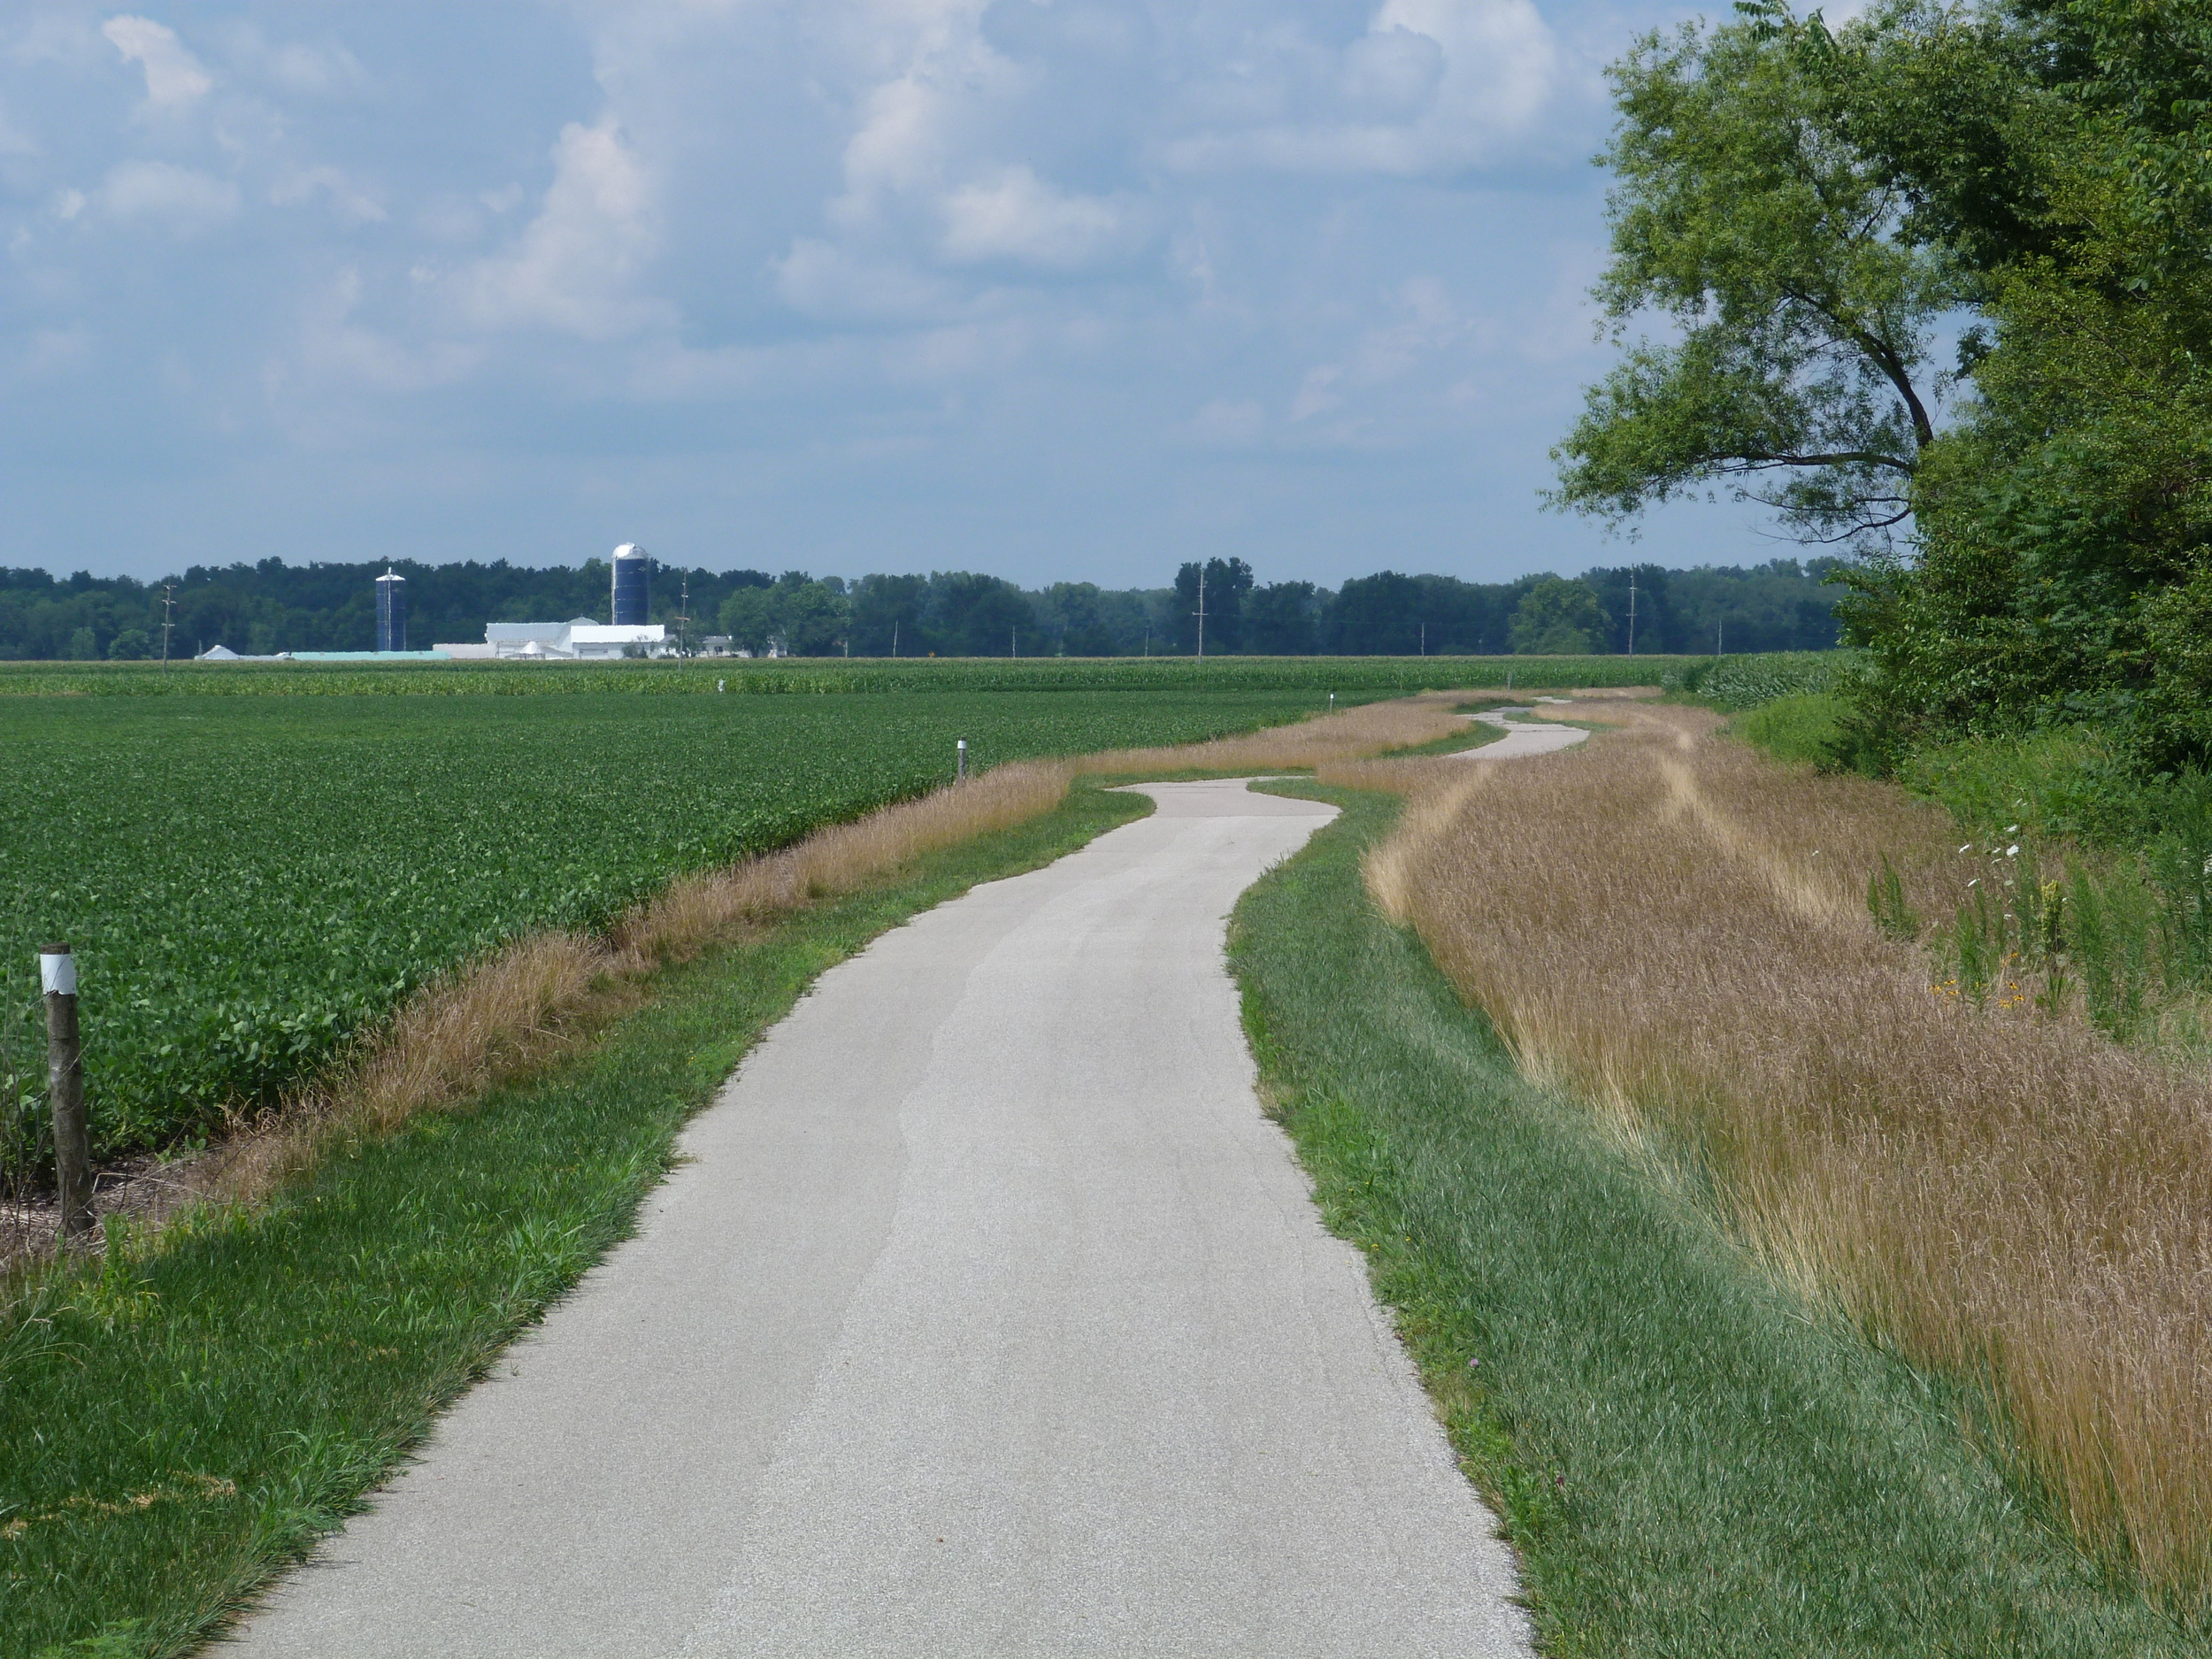 Indiana countryside.